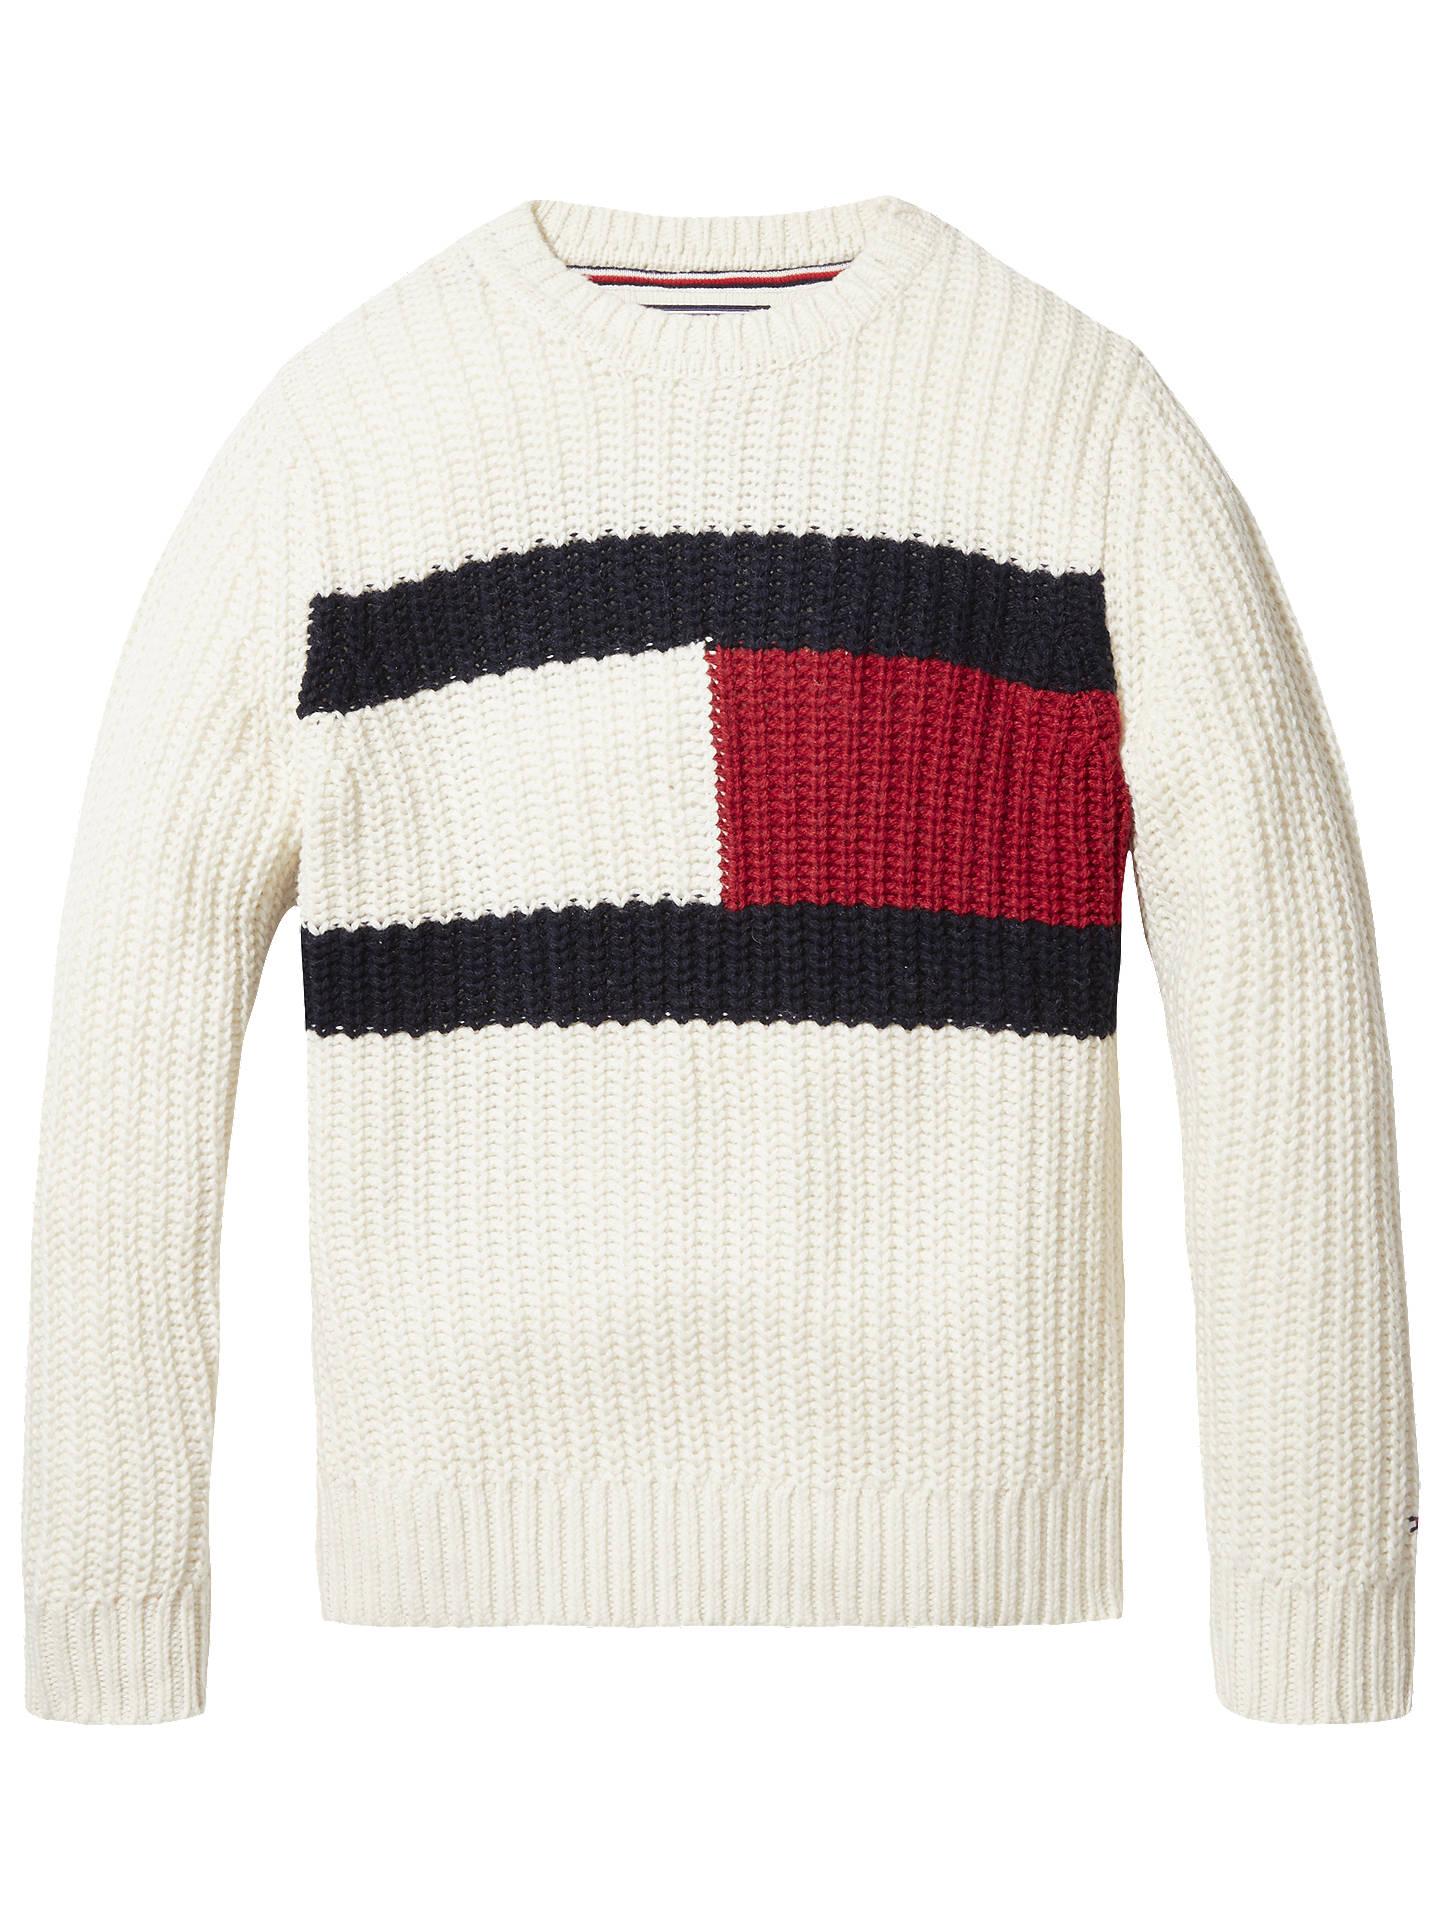 587ffe2b2 Buy Tommy Hilfiger Boys' Flag Sweater, White, 6 years Online at johnlewis.